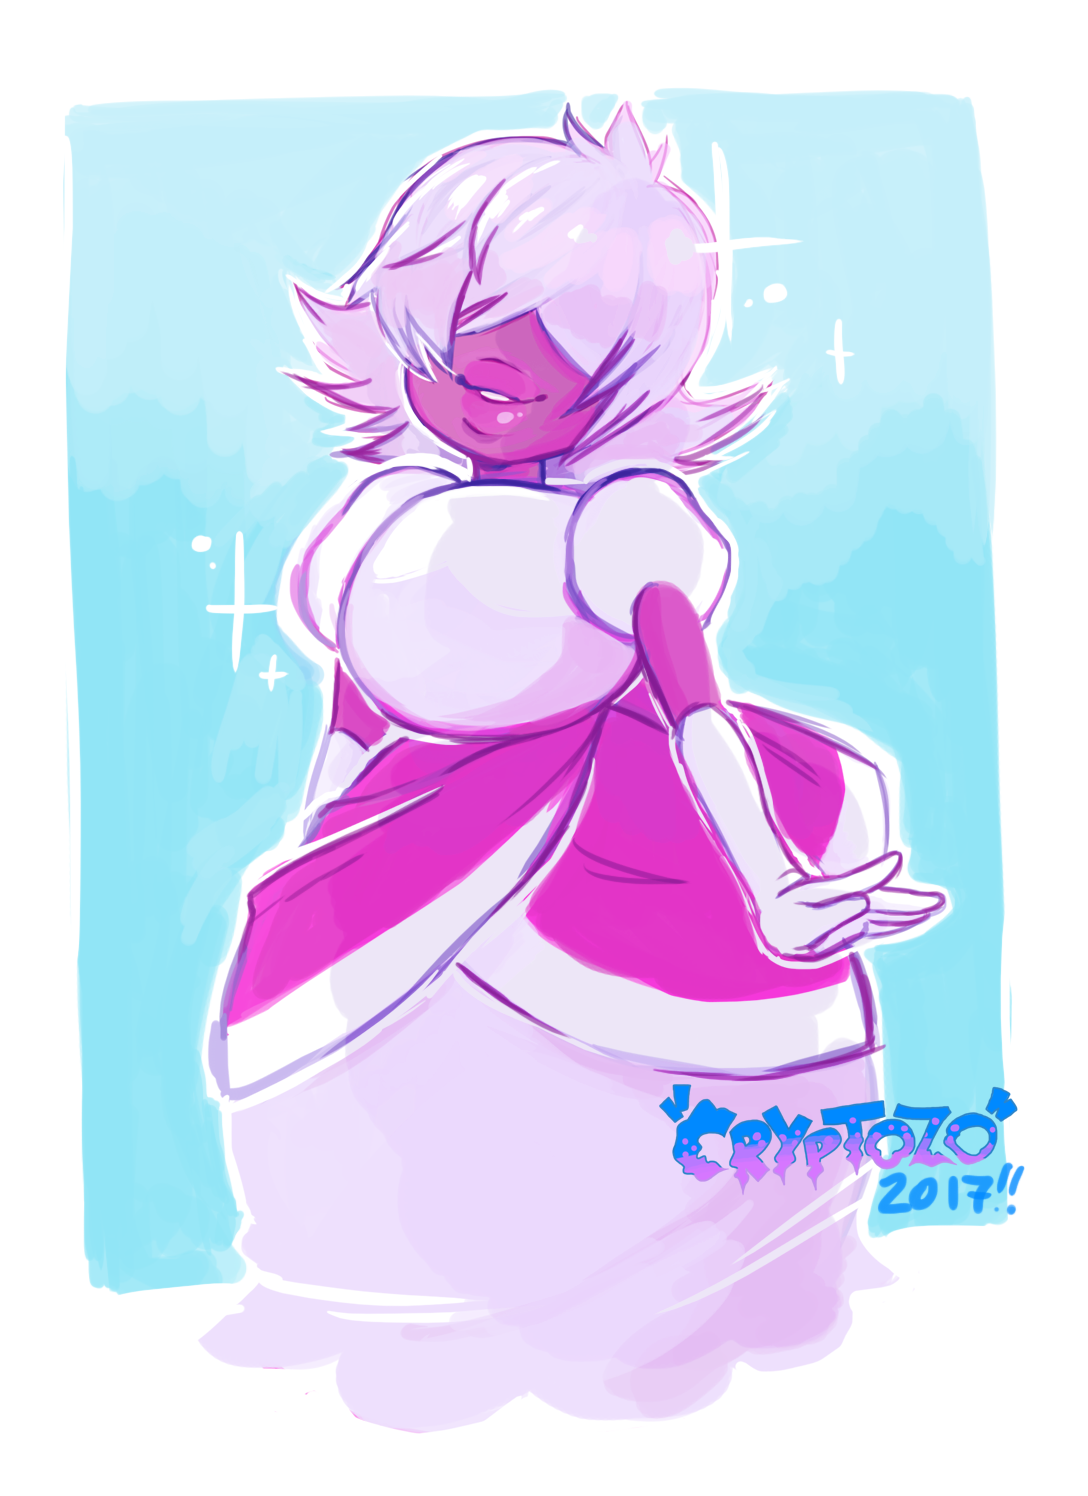 Doodling after watching the new eps and ended up colouring them in a way inspired by @queerdraws art cause i thought the soft pretty colouring would suit Padparascha ________ Please consider donating...